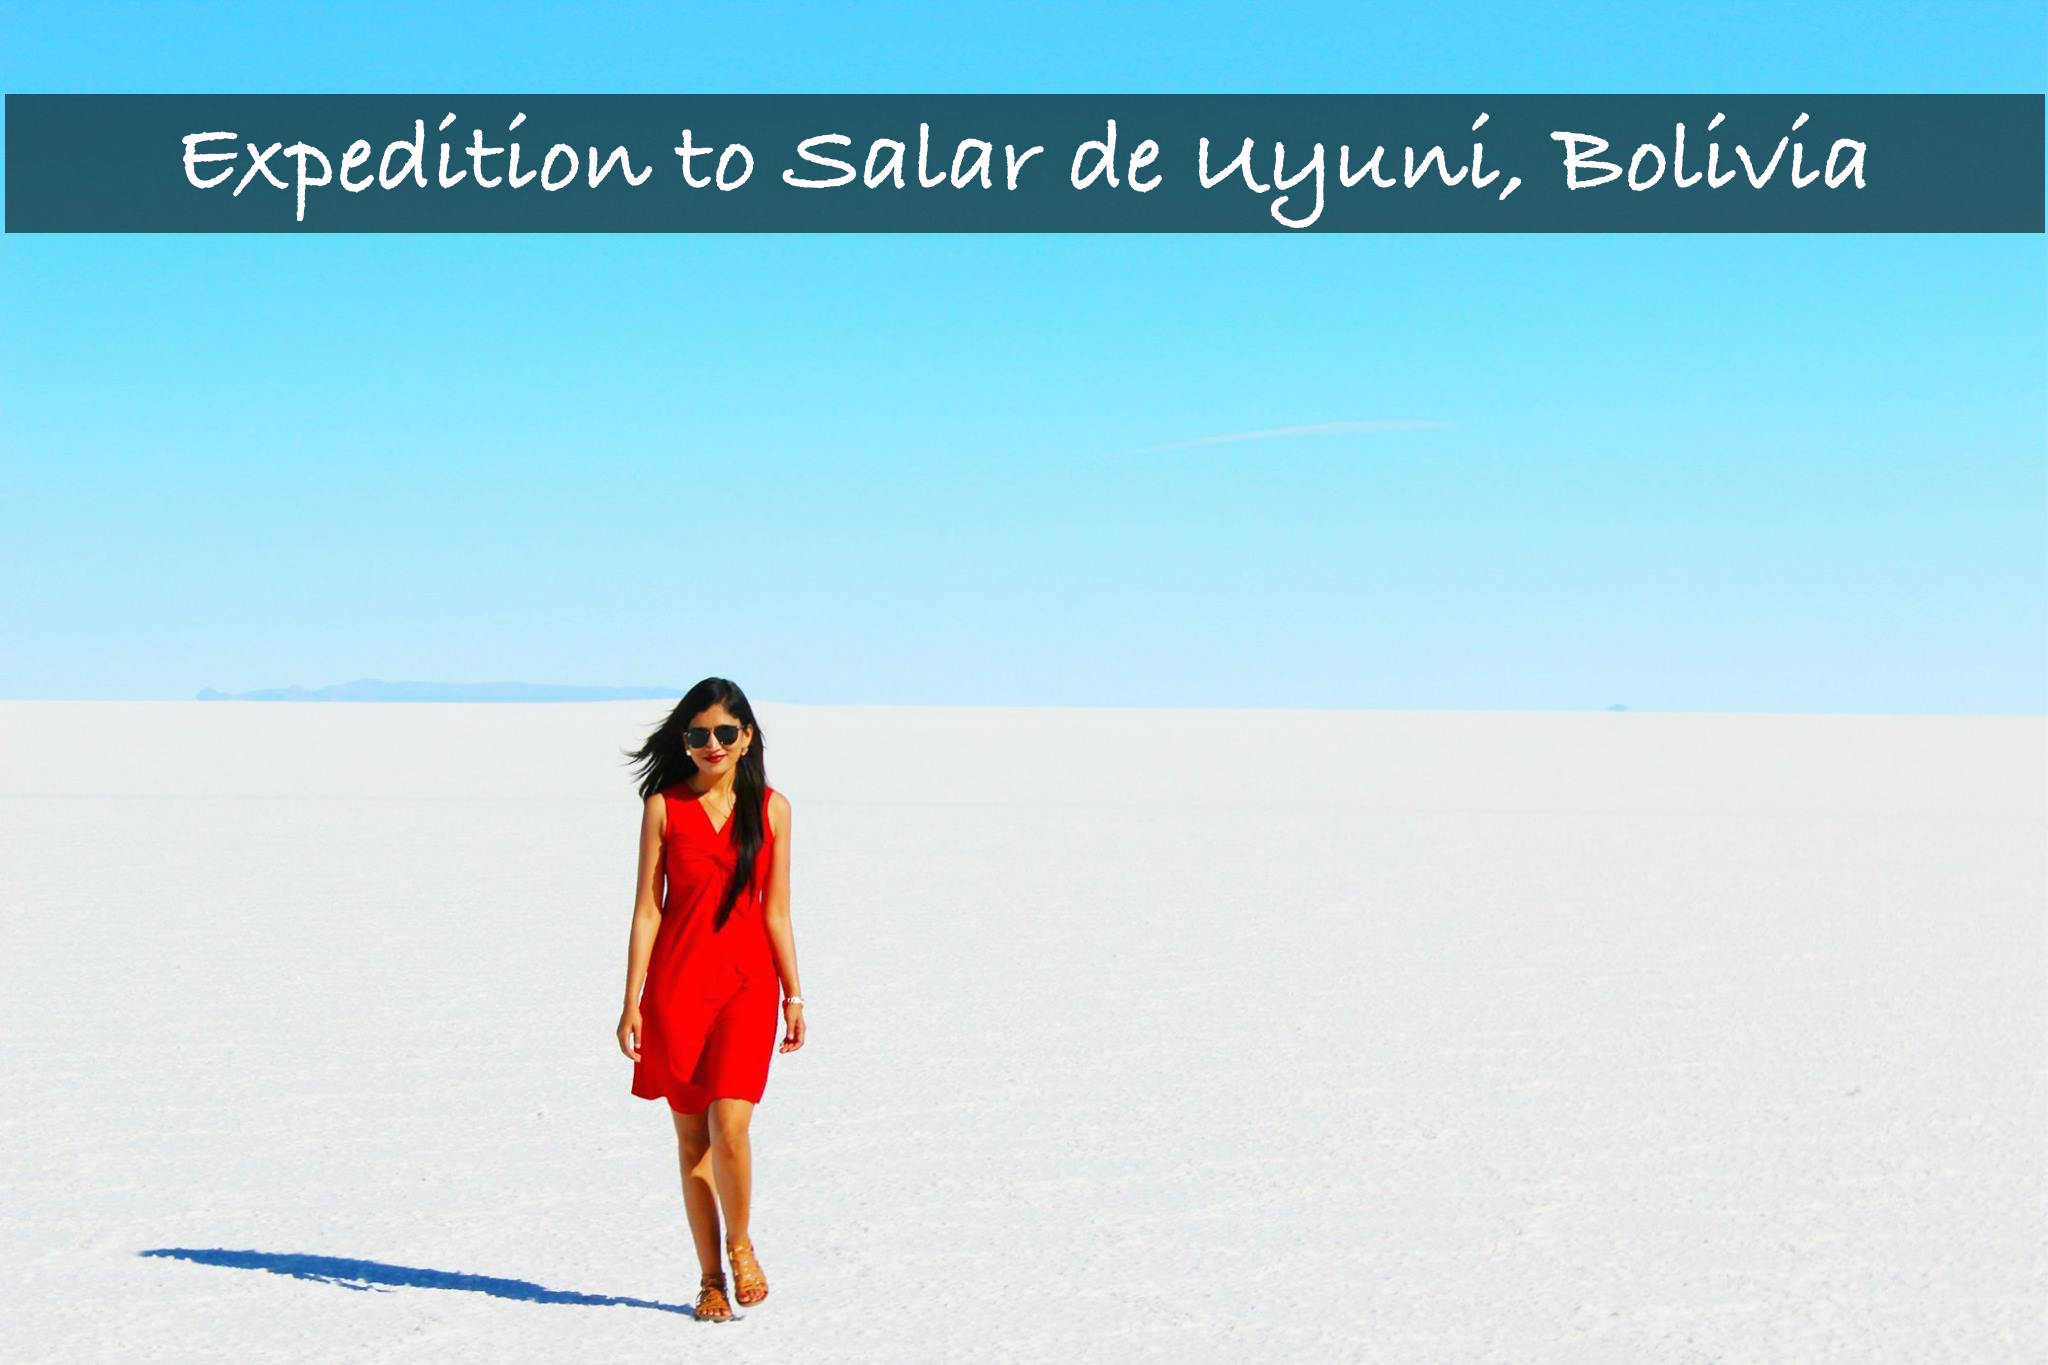 Expedition to Salar de Uyuni